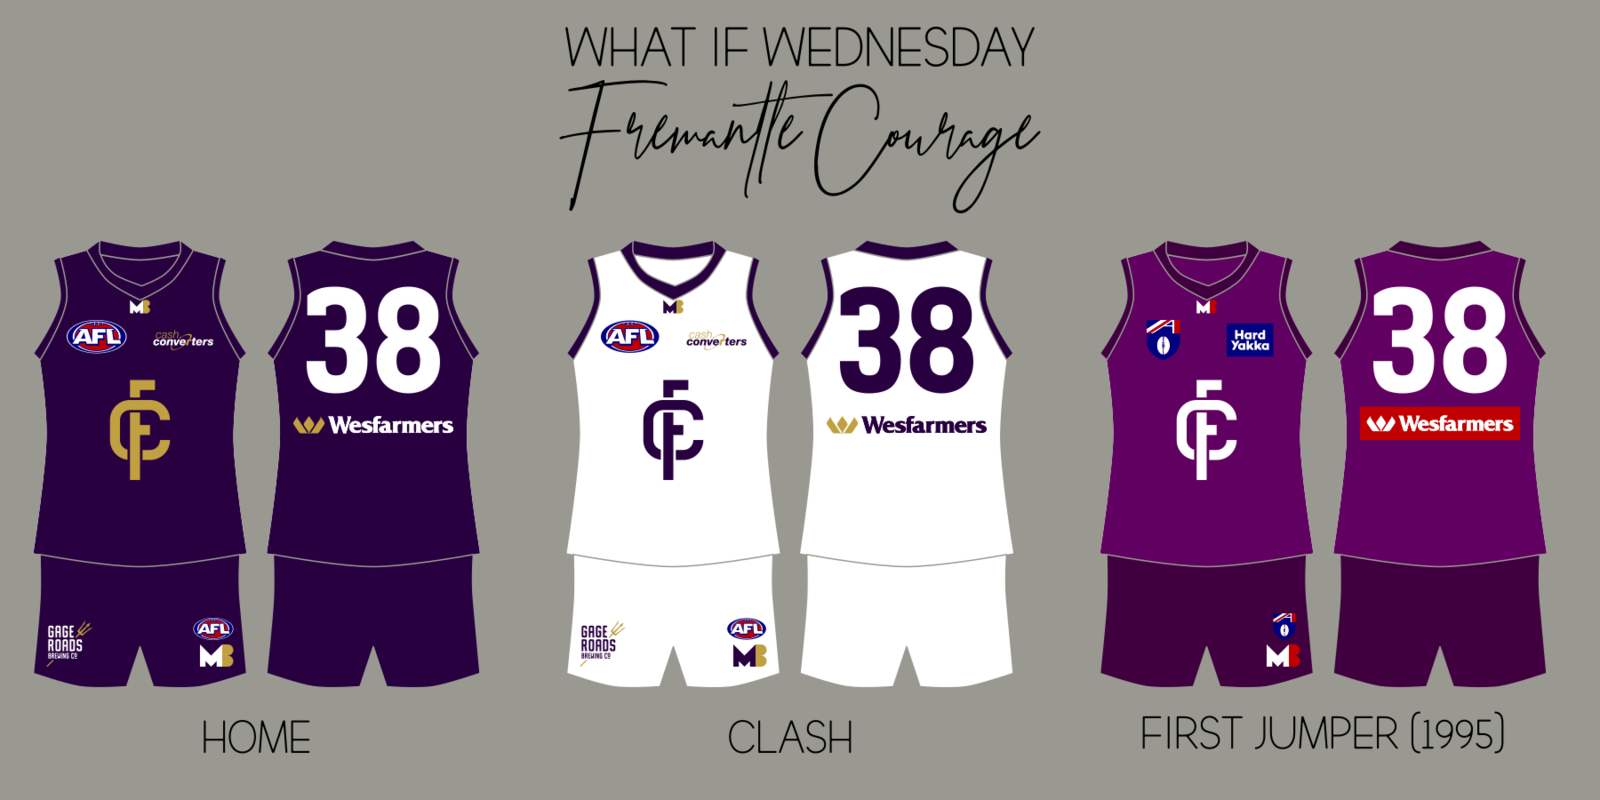 x06 Fremantle Courage.png